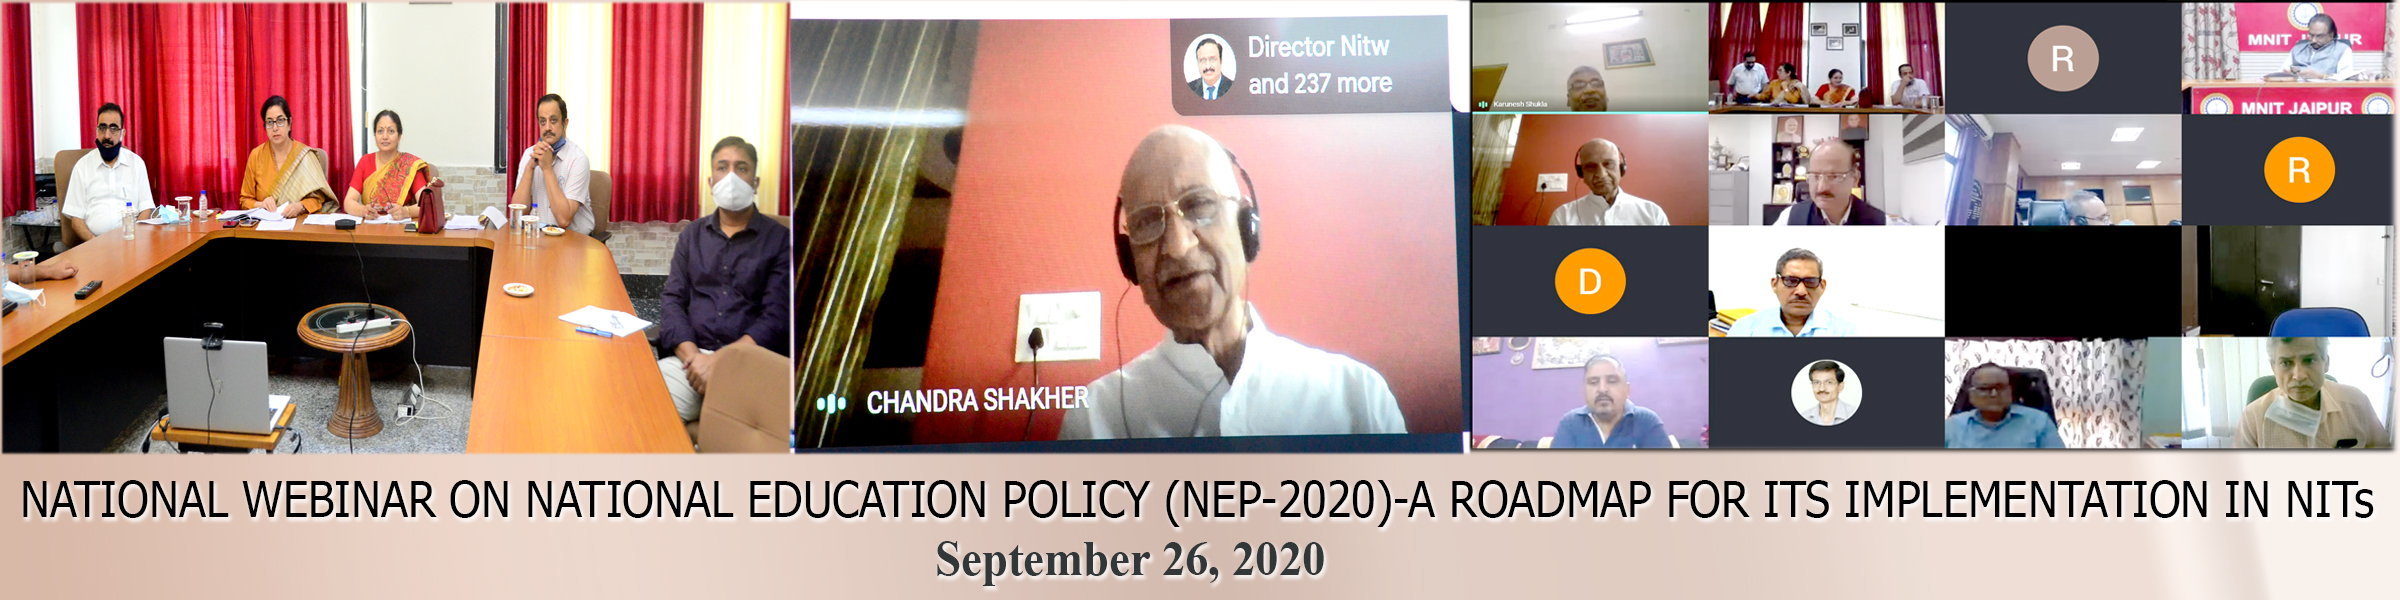 National Webinar  on  National Education Policy (NEP-2020)